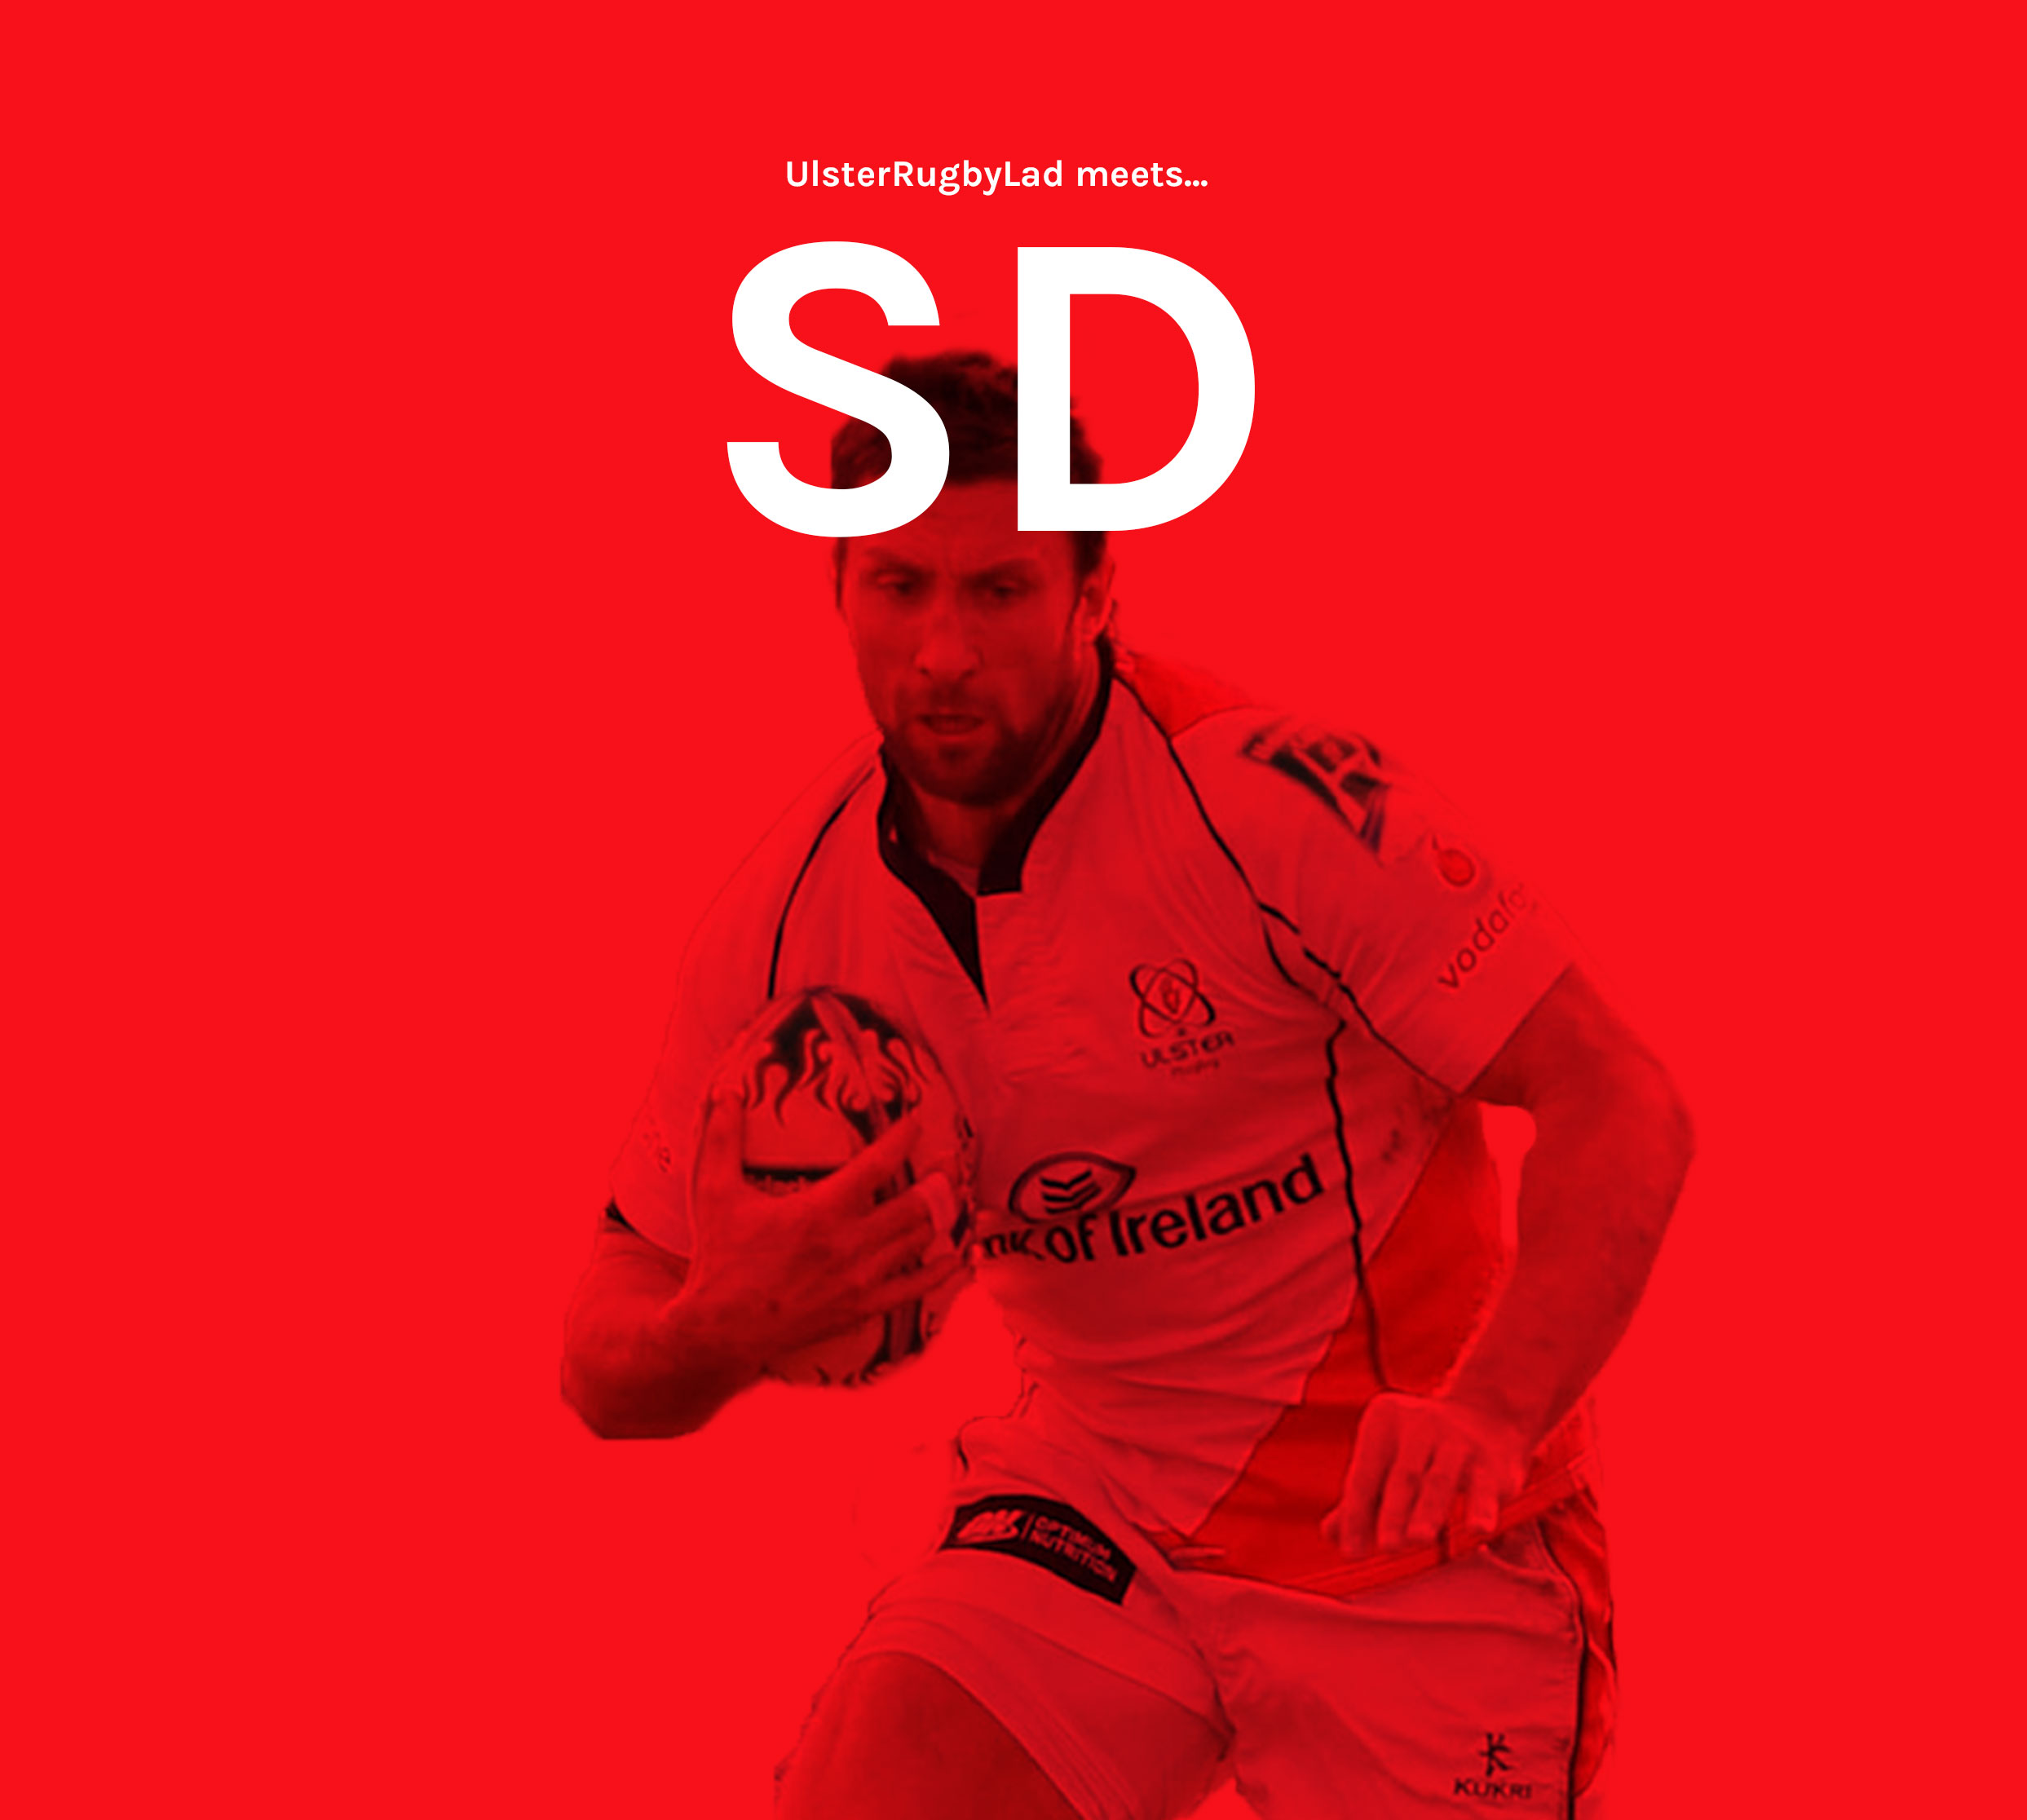 Ulster Rugby Lad meets… Simon Danielli